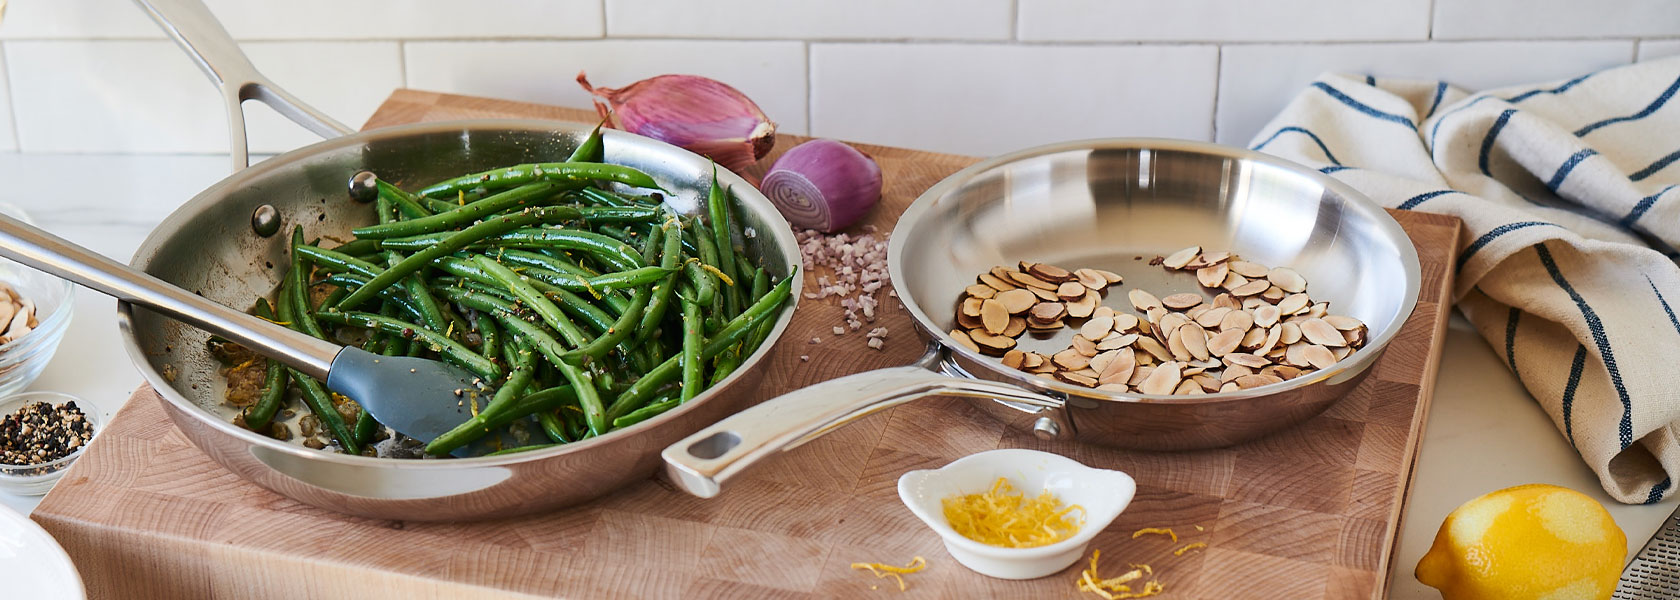 Sur La Table stainless steel cookware